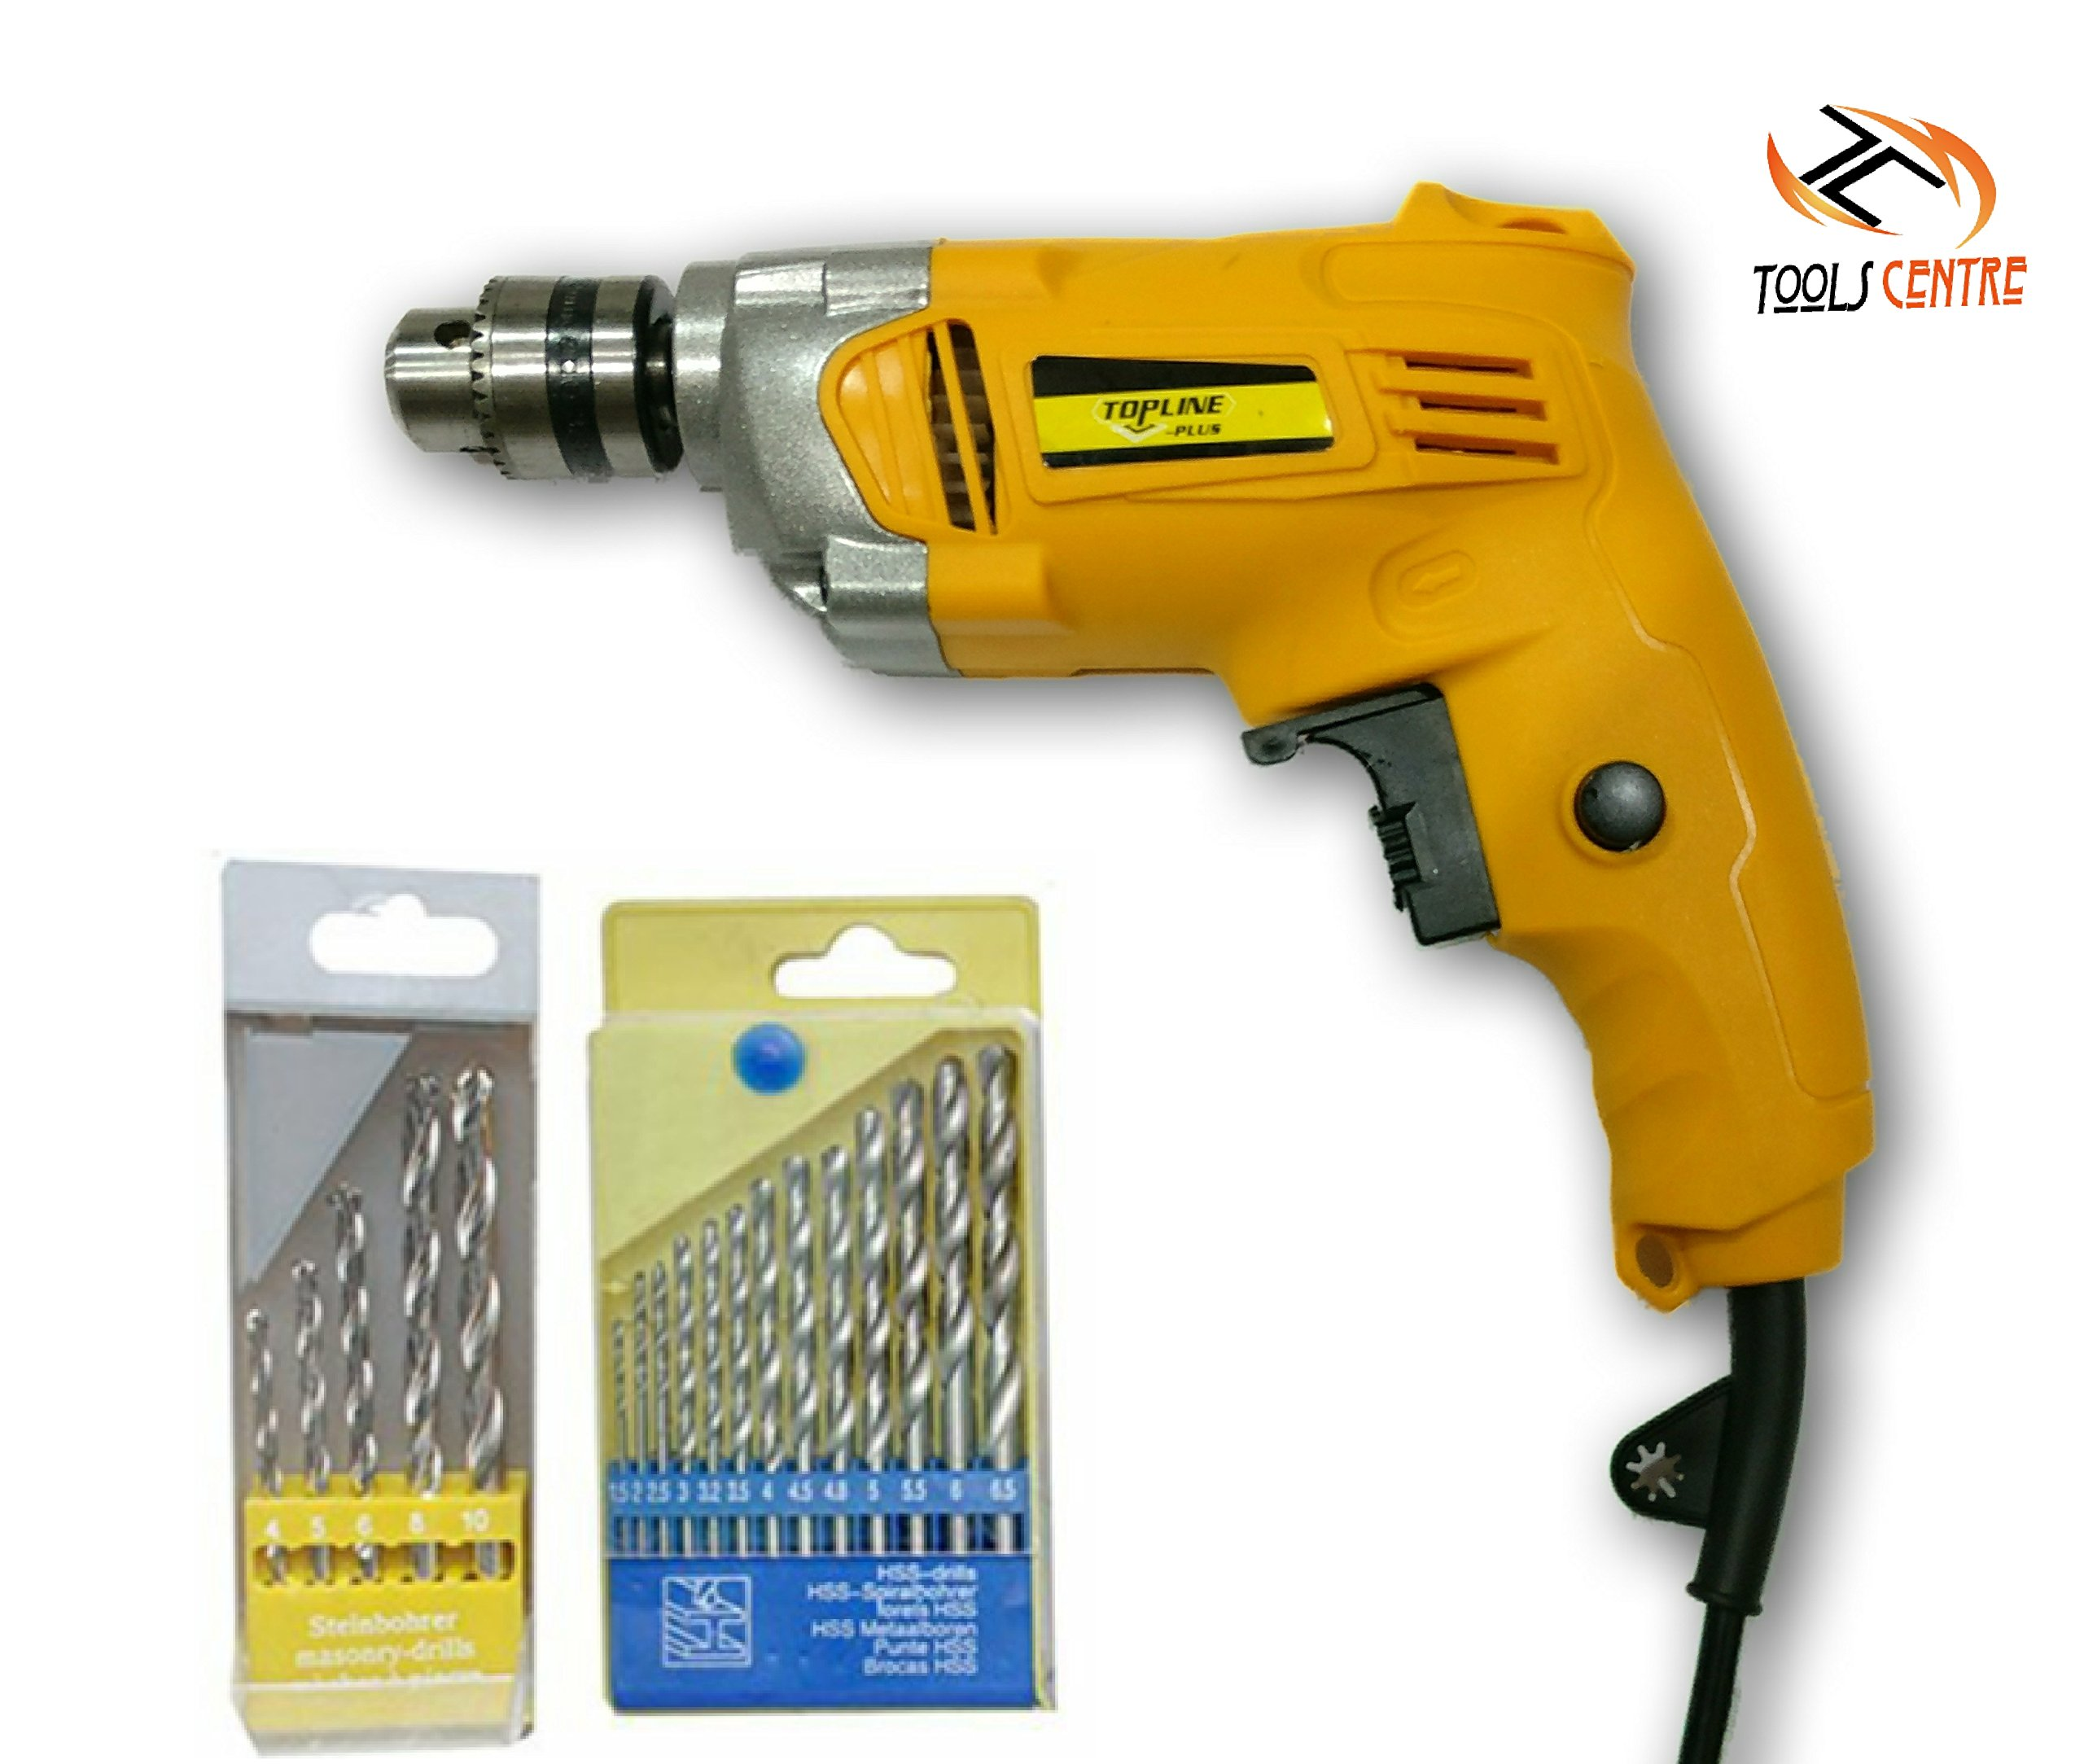 TOOLSCENTRE 10mm Half Metal body Drill Machine Reverse/Forward & Speed Control Facility With Drill Sets